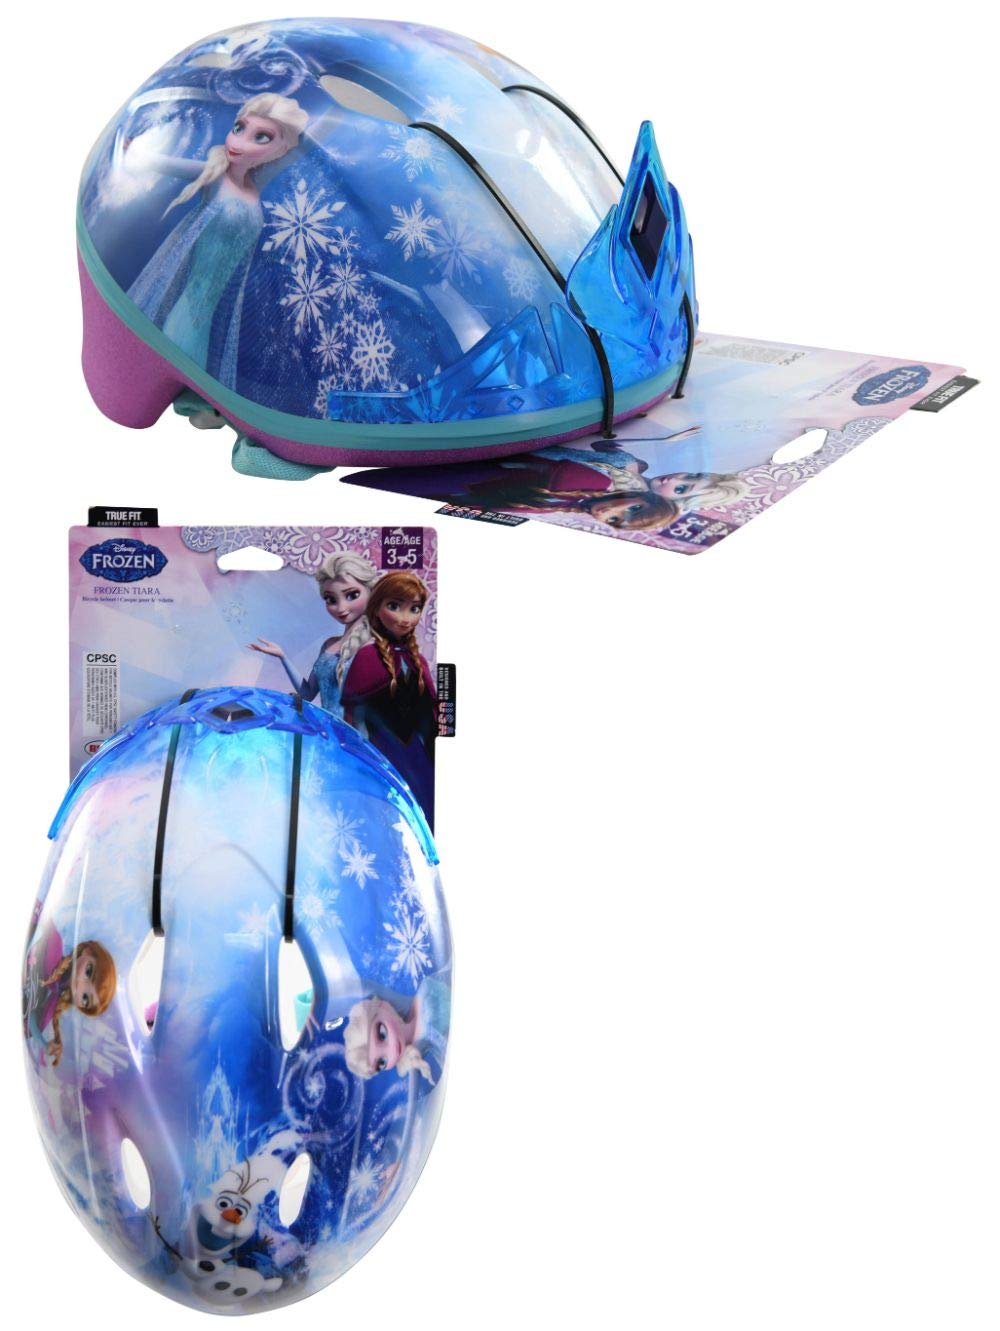 Frozen Toddler Kids Bike Helmet for Girls Ages 3-5 years by Disney with Princess Tiara by Disney